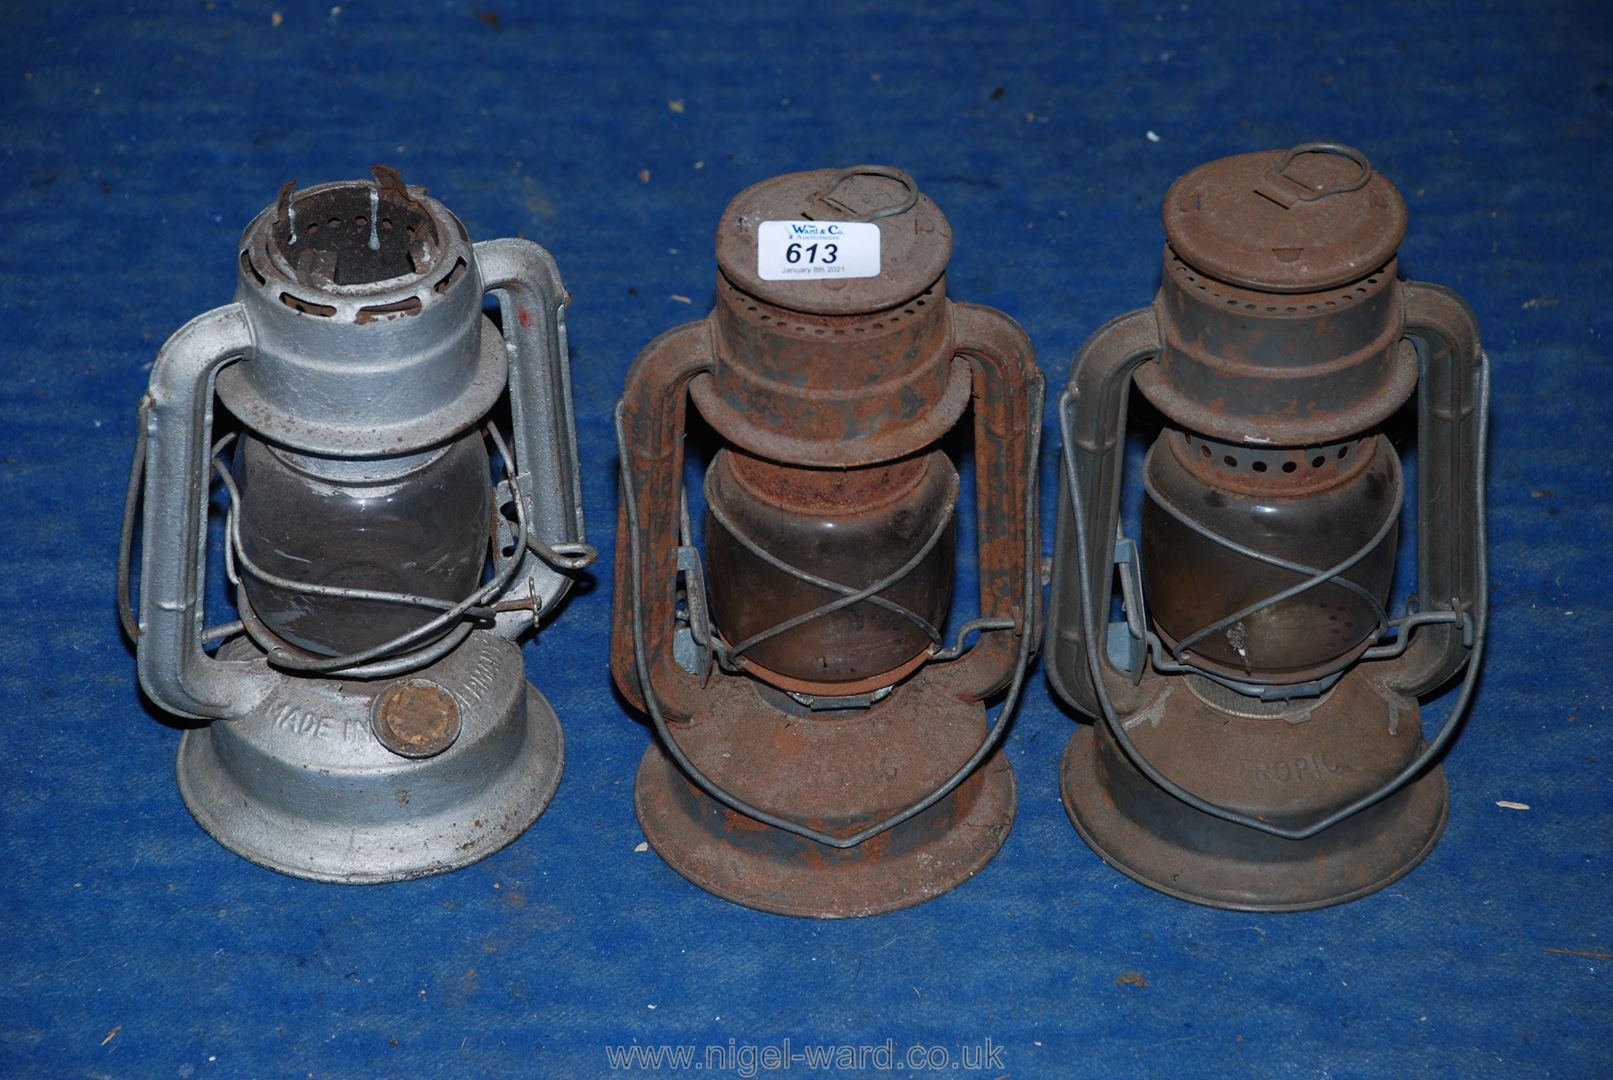 Three paraffin storm lanterns/hurricane lamps.